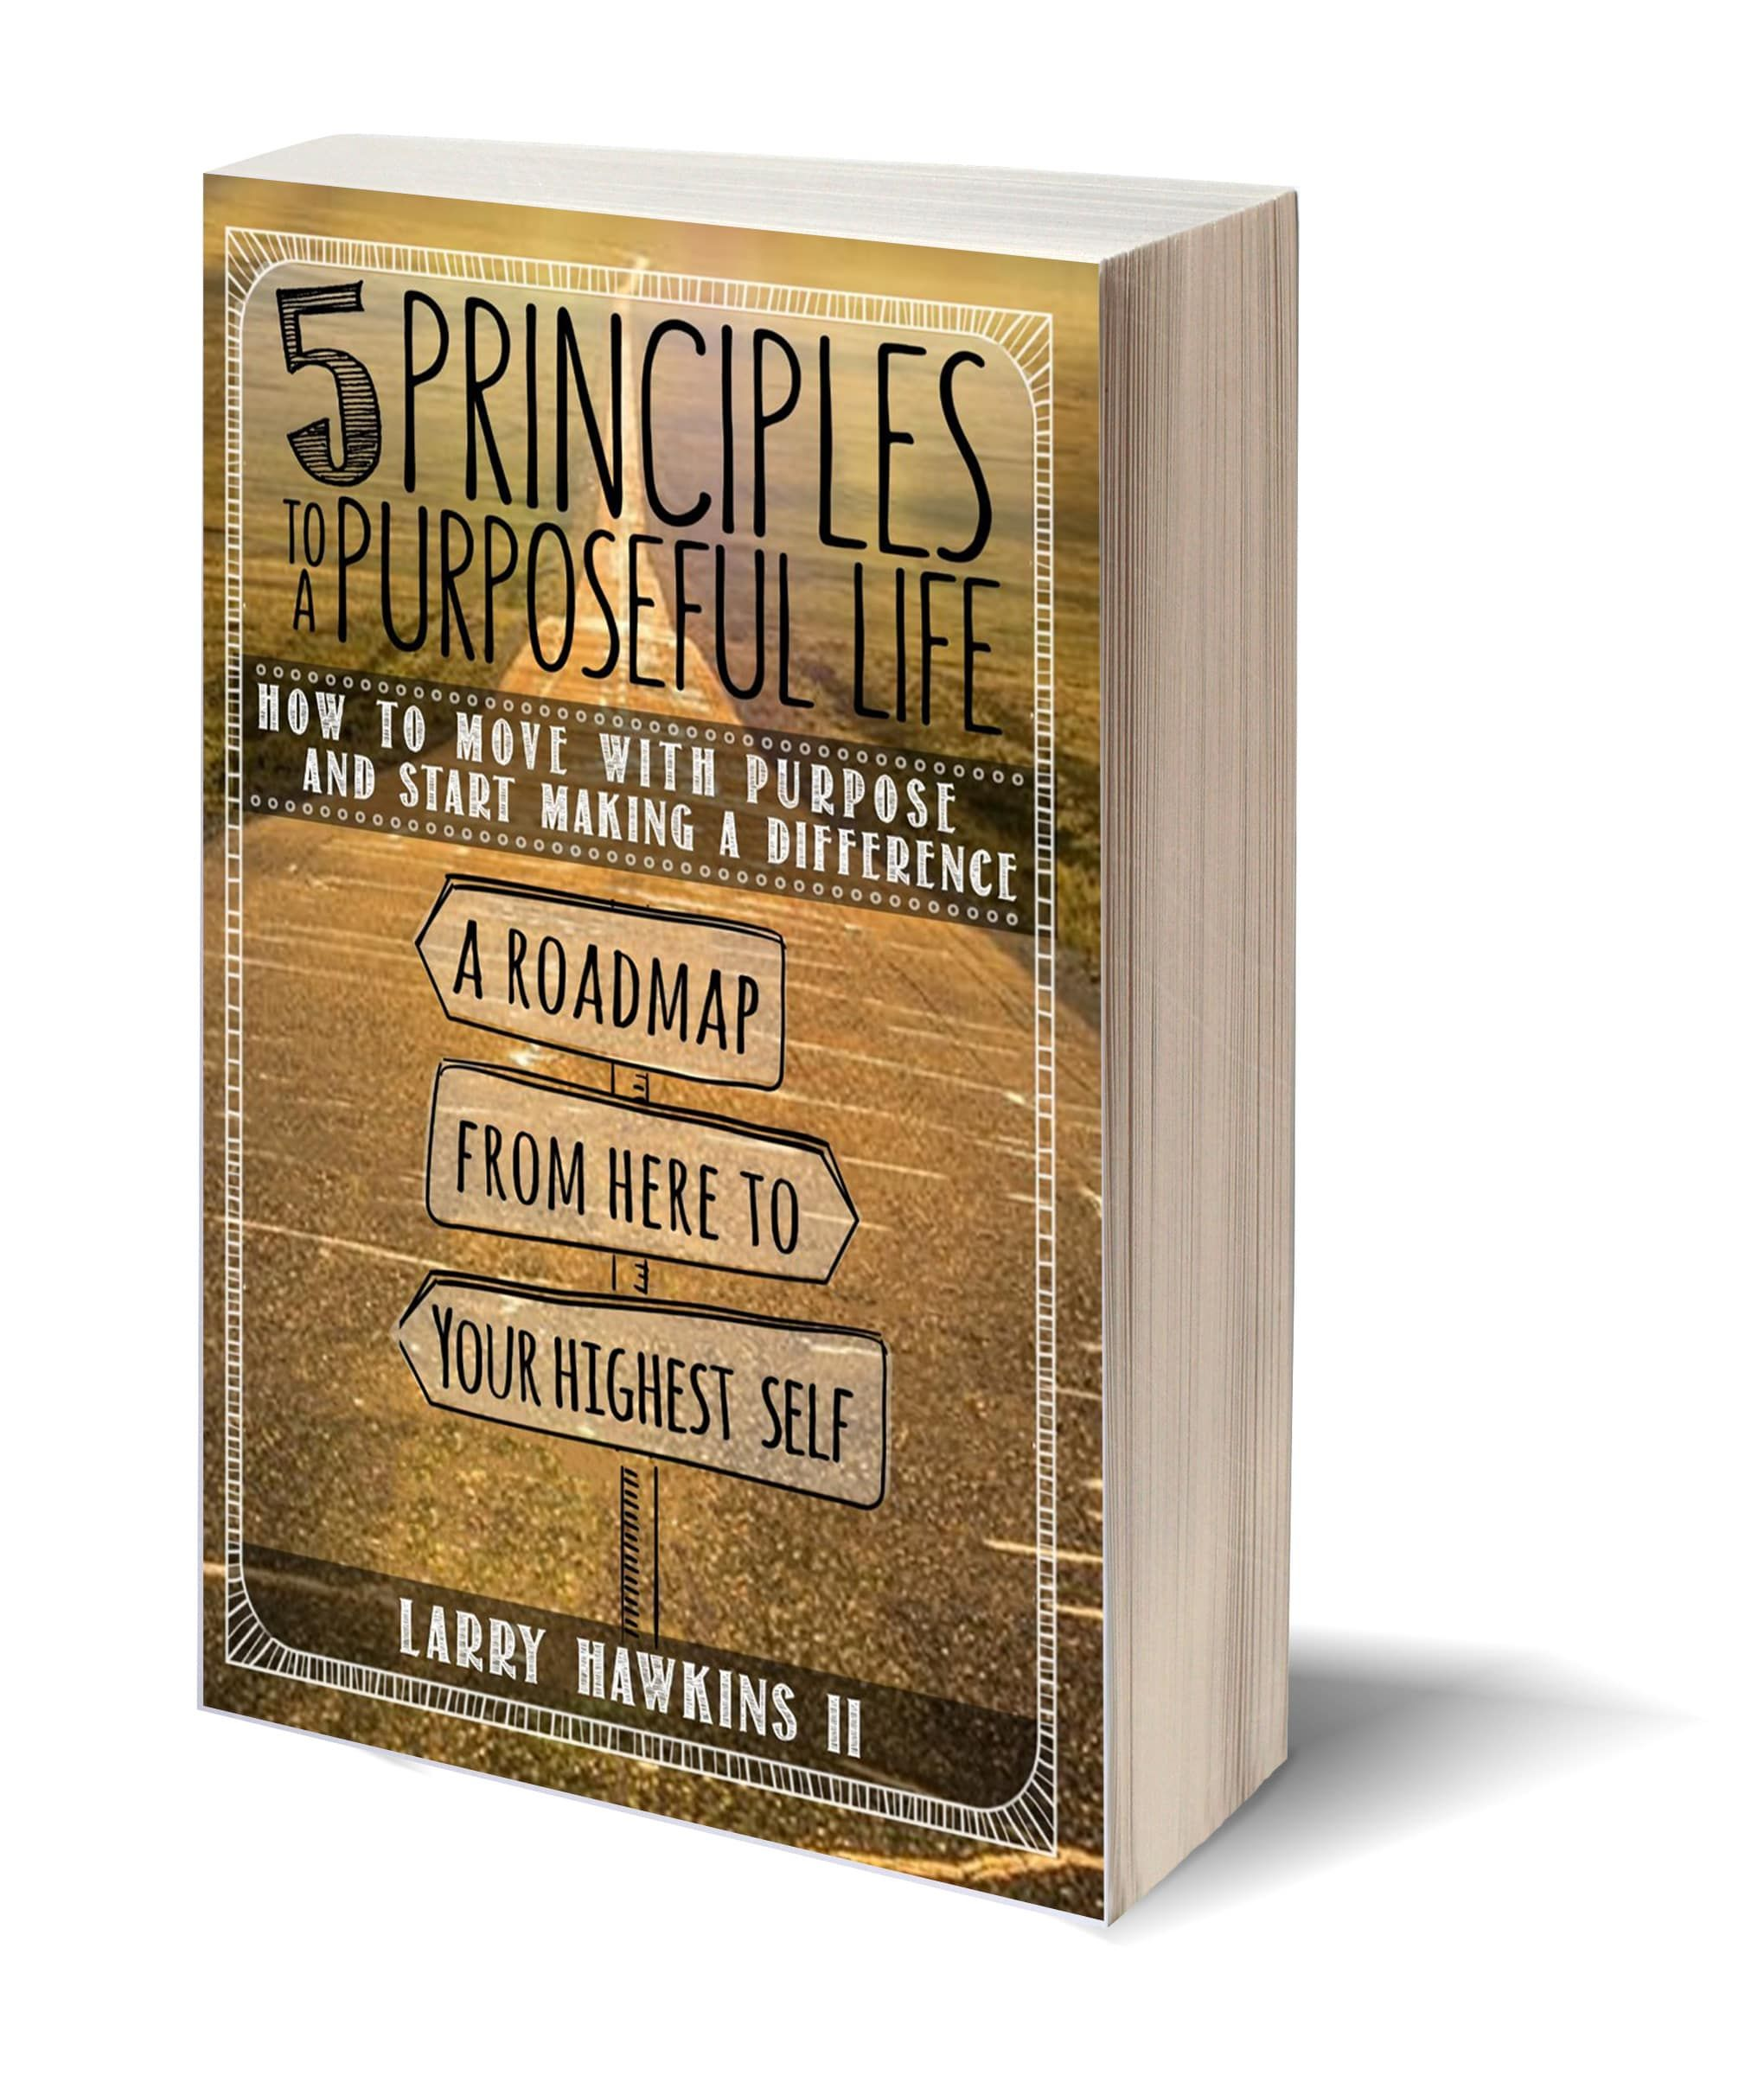 Hawkdg store life purpose book worth reading heres to you